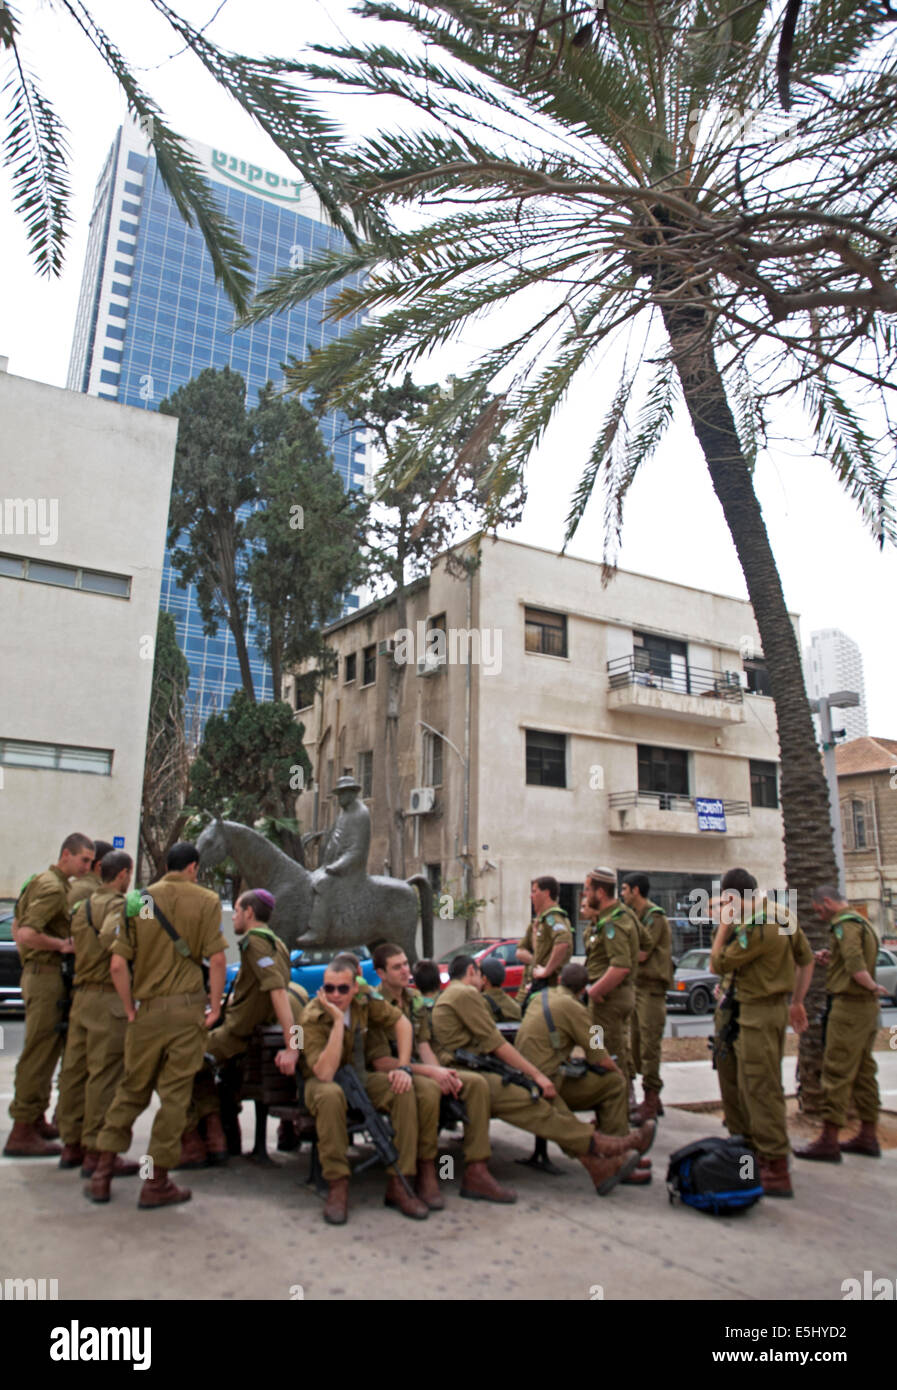 Army officers in city centre near the Rothschild Boulevard, Tel Aviv, Israel - Stock Image